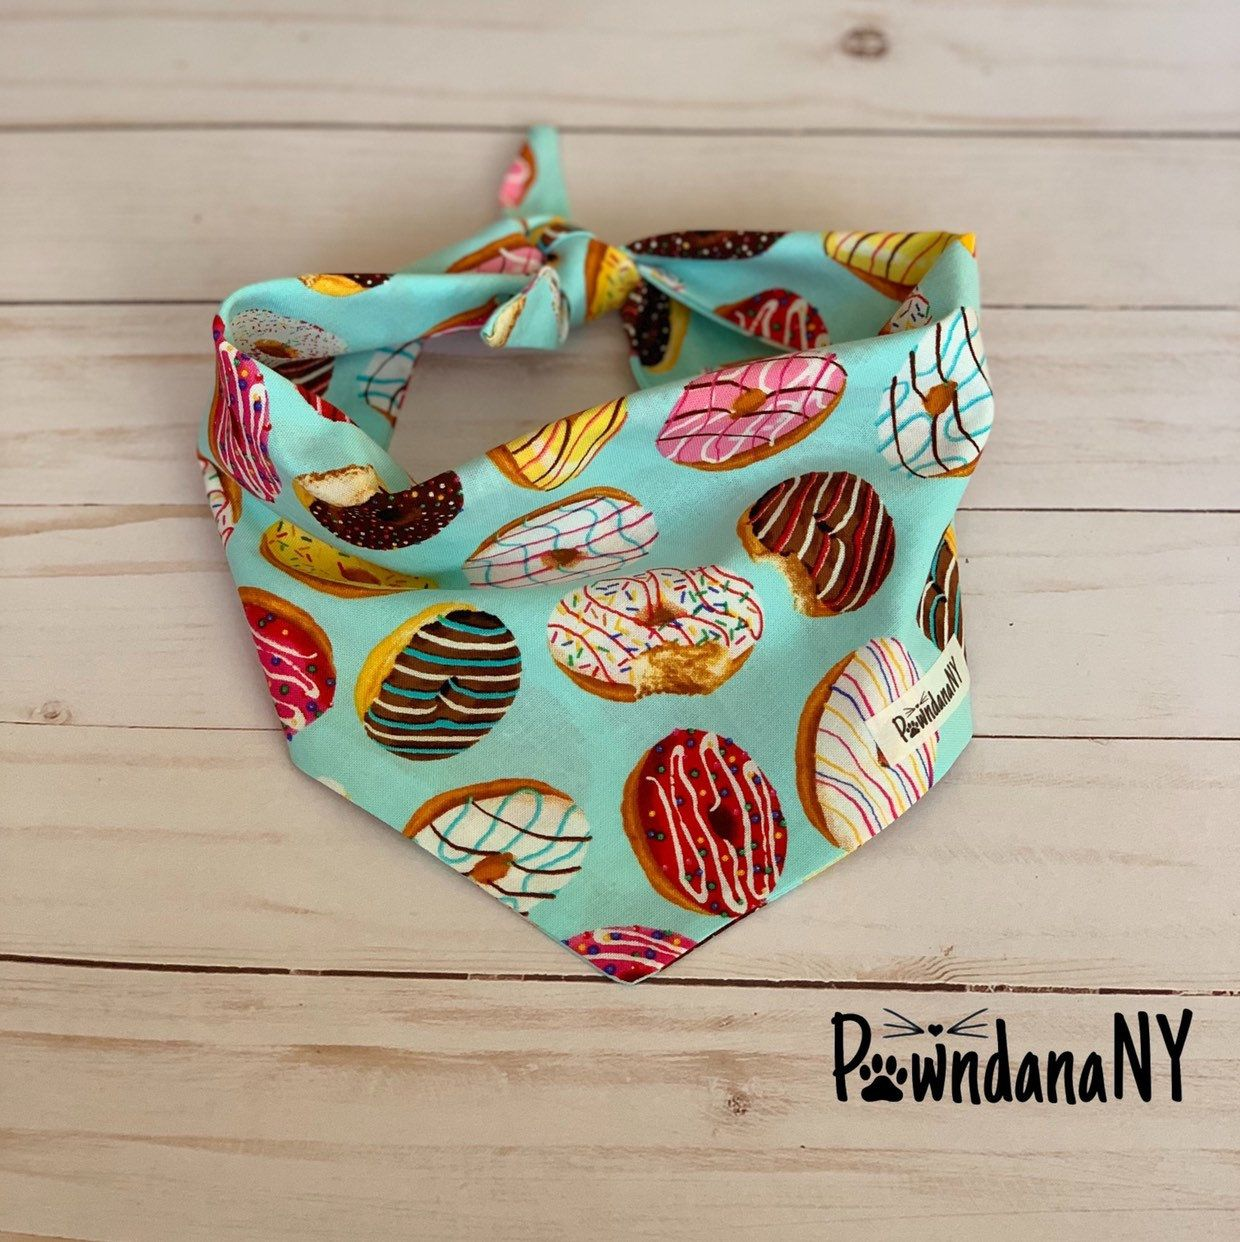 ****DISCOUNT CODE: PINTEREST10**** Dog Bandana, Donuts Pawndana, Dog Bandana, Cat Bandana, Fabric Bandana, watermelon Dog Bandana, Dog Tie Bandana, Donuts Bandana #pets #donutbandana #dogbandana #dogwhitebandana #catbandana #dogcollar #dogtiebandana #tiebandana #dogneckwear